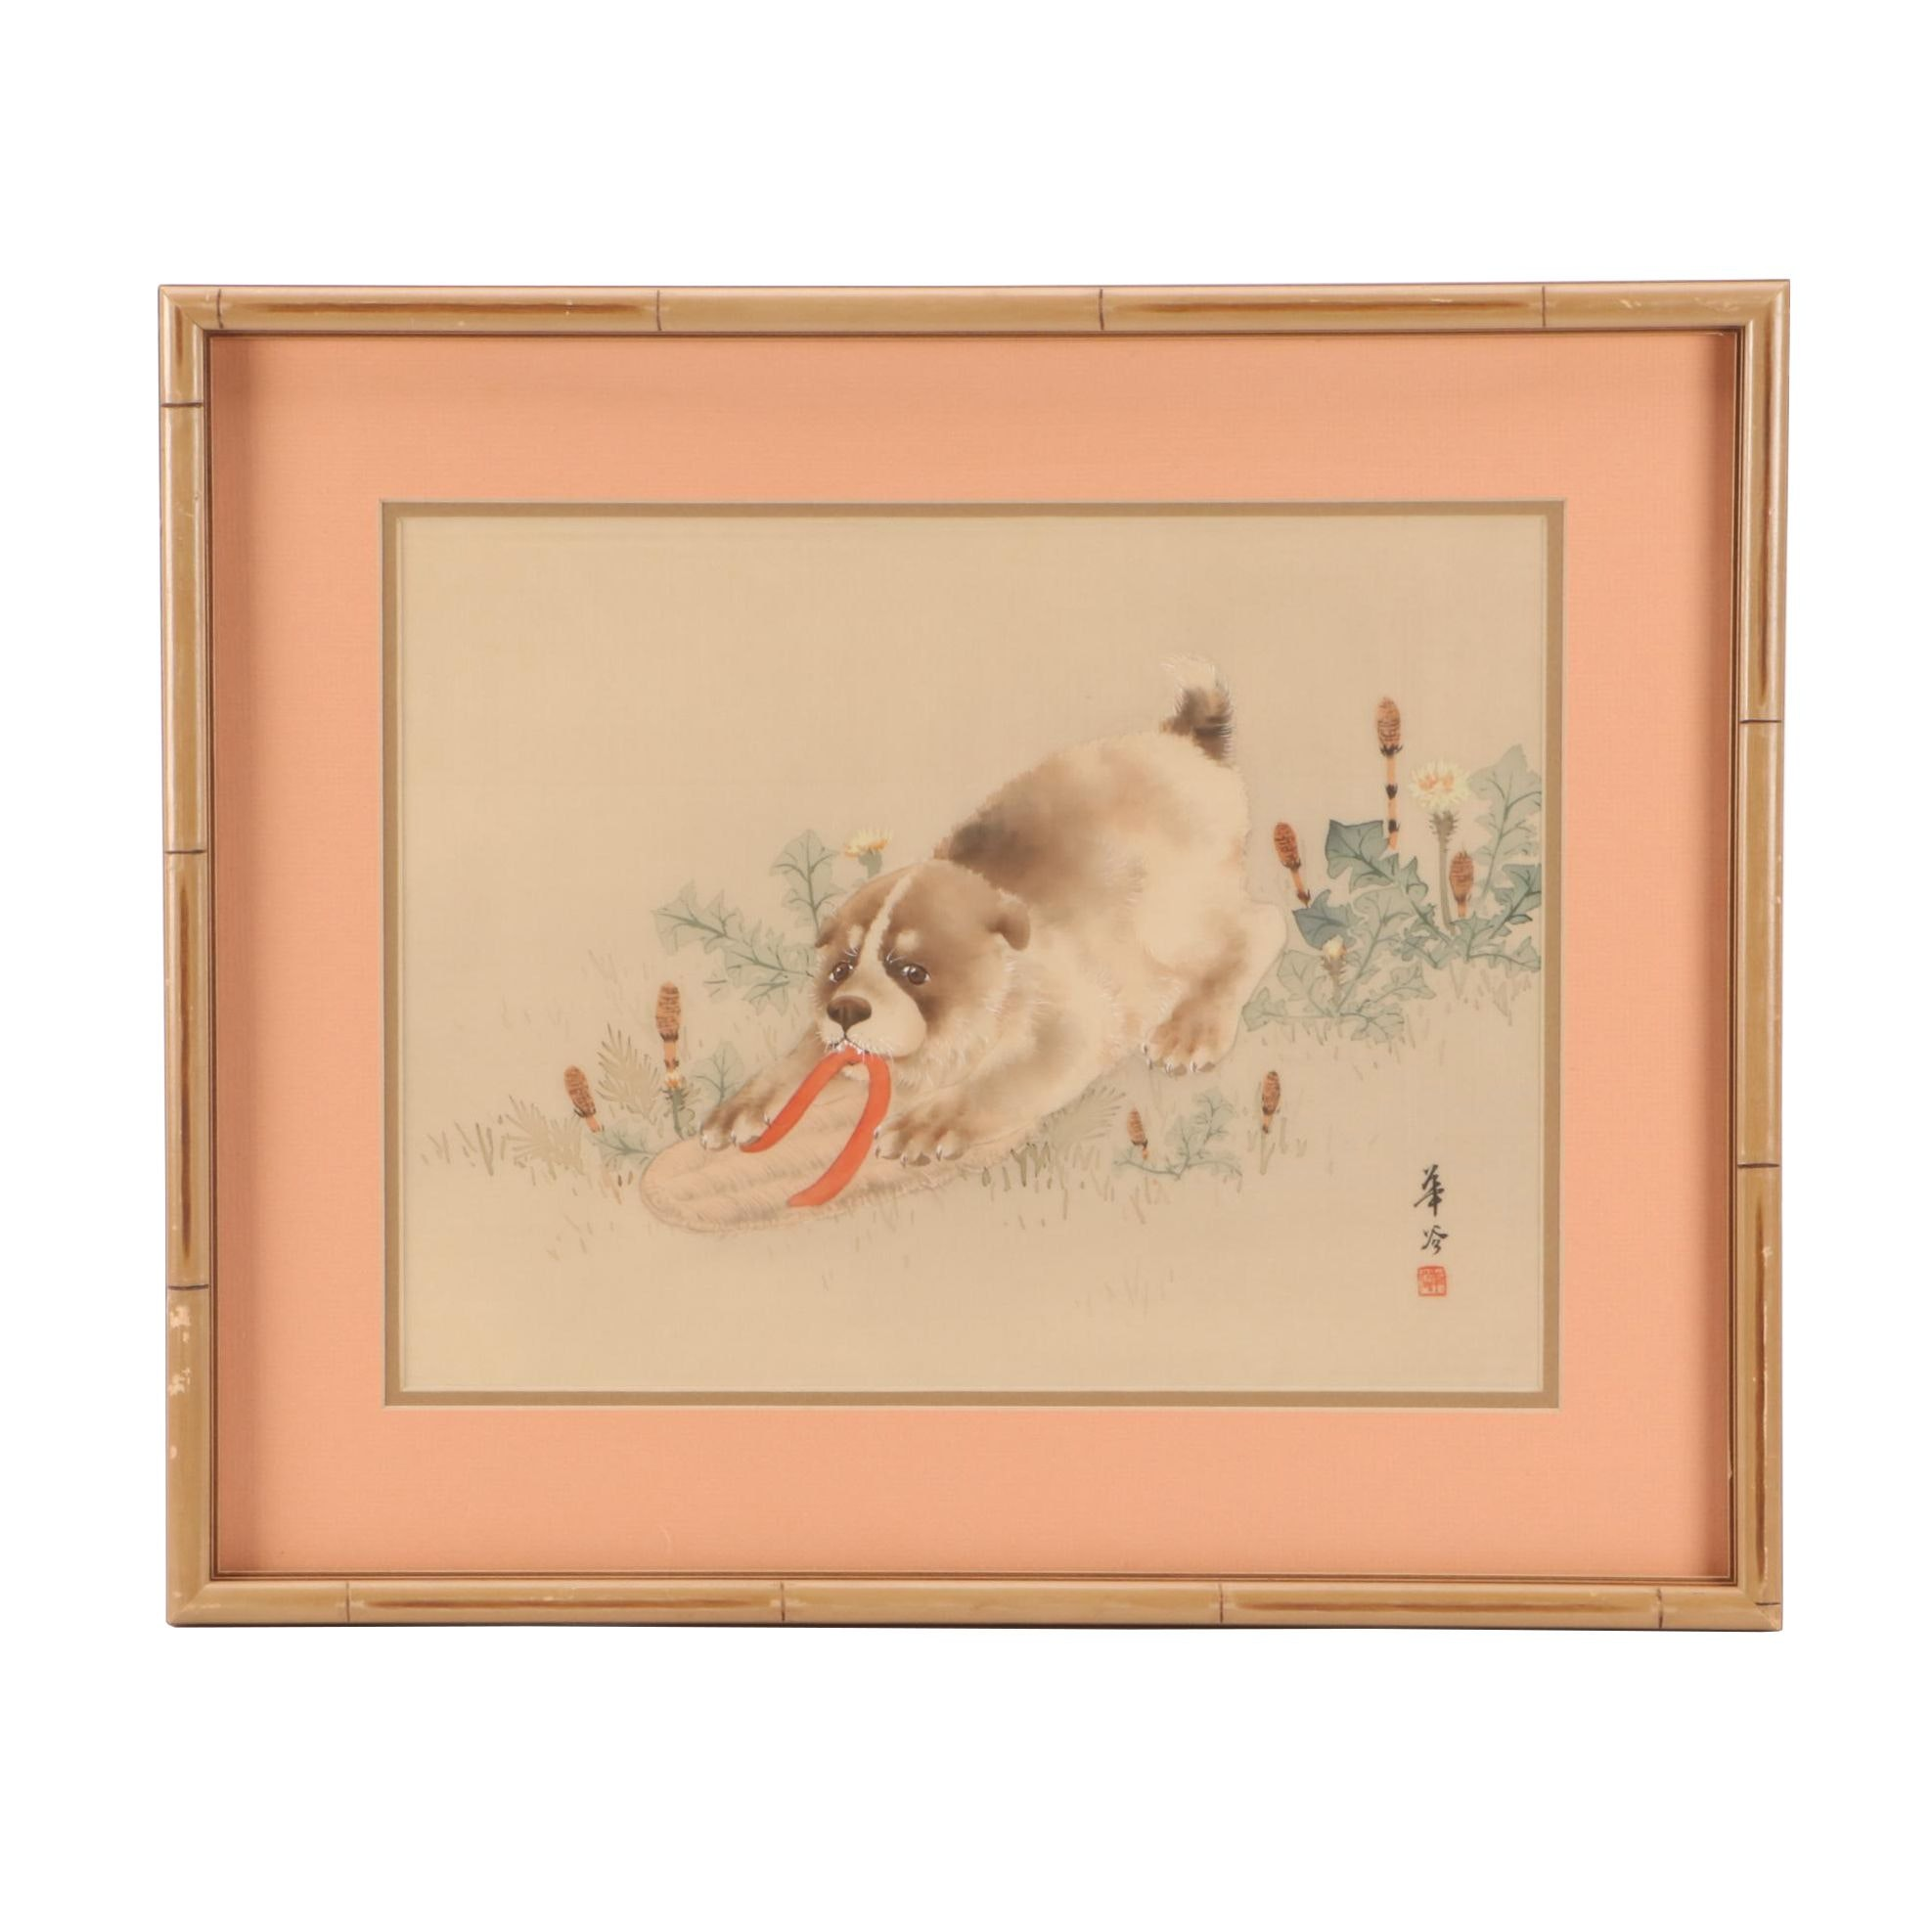 Japanese Gouache and Watercolor Painting of a Dog